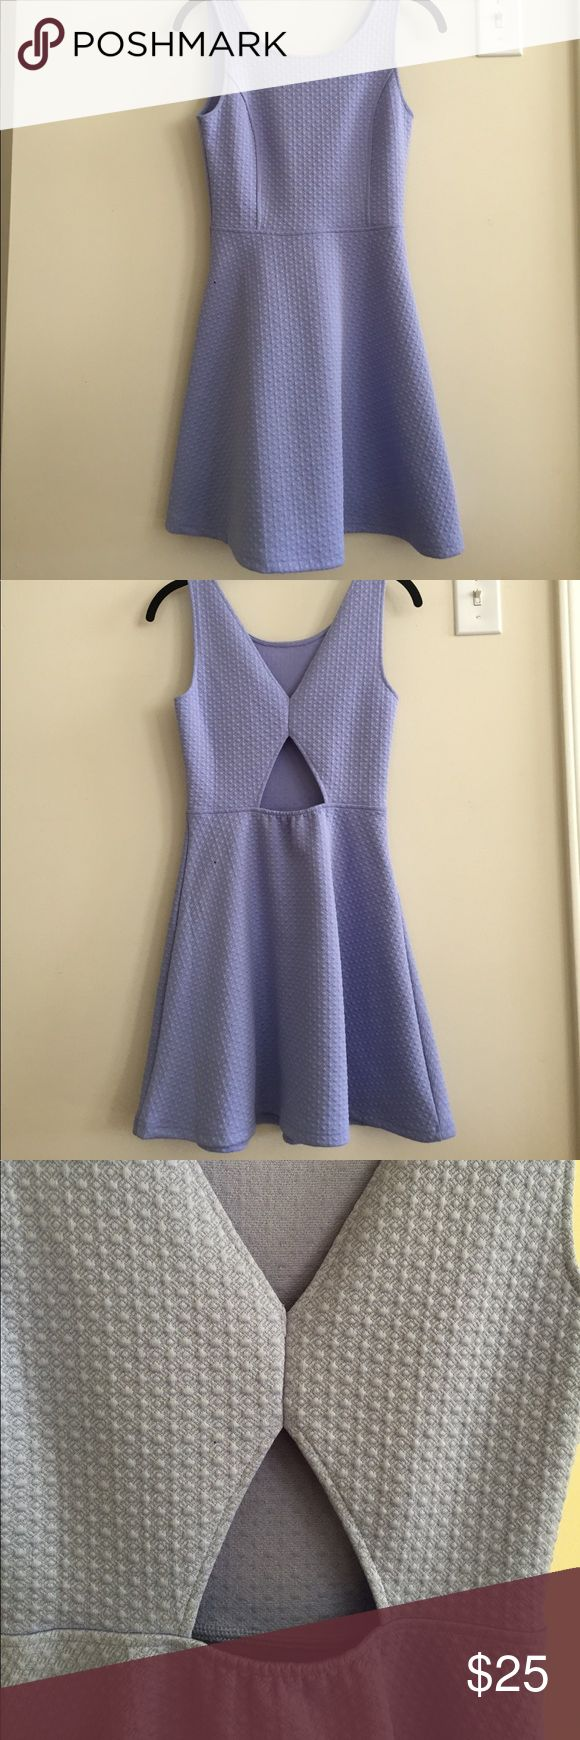 Periwinkle Dress with Open Back Feature Bought from Nordstrom, worn only once! Stretchy material makes this Dress easy and fun to wear! Open area in Back gives it a beautiful twist. 98% polyester, 2% spandex. Size small! Frenchi Dresses